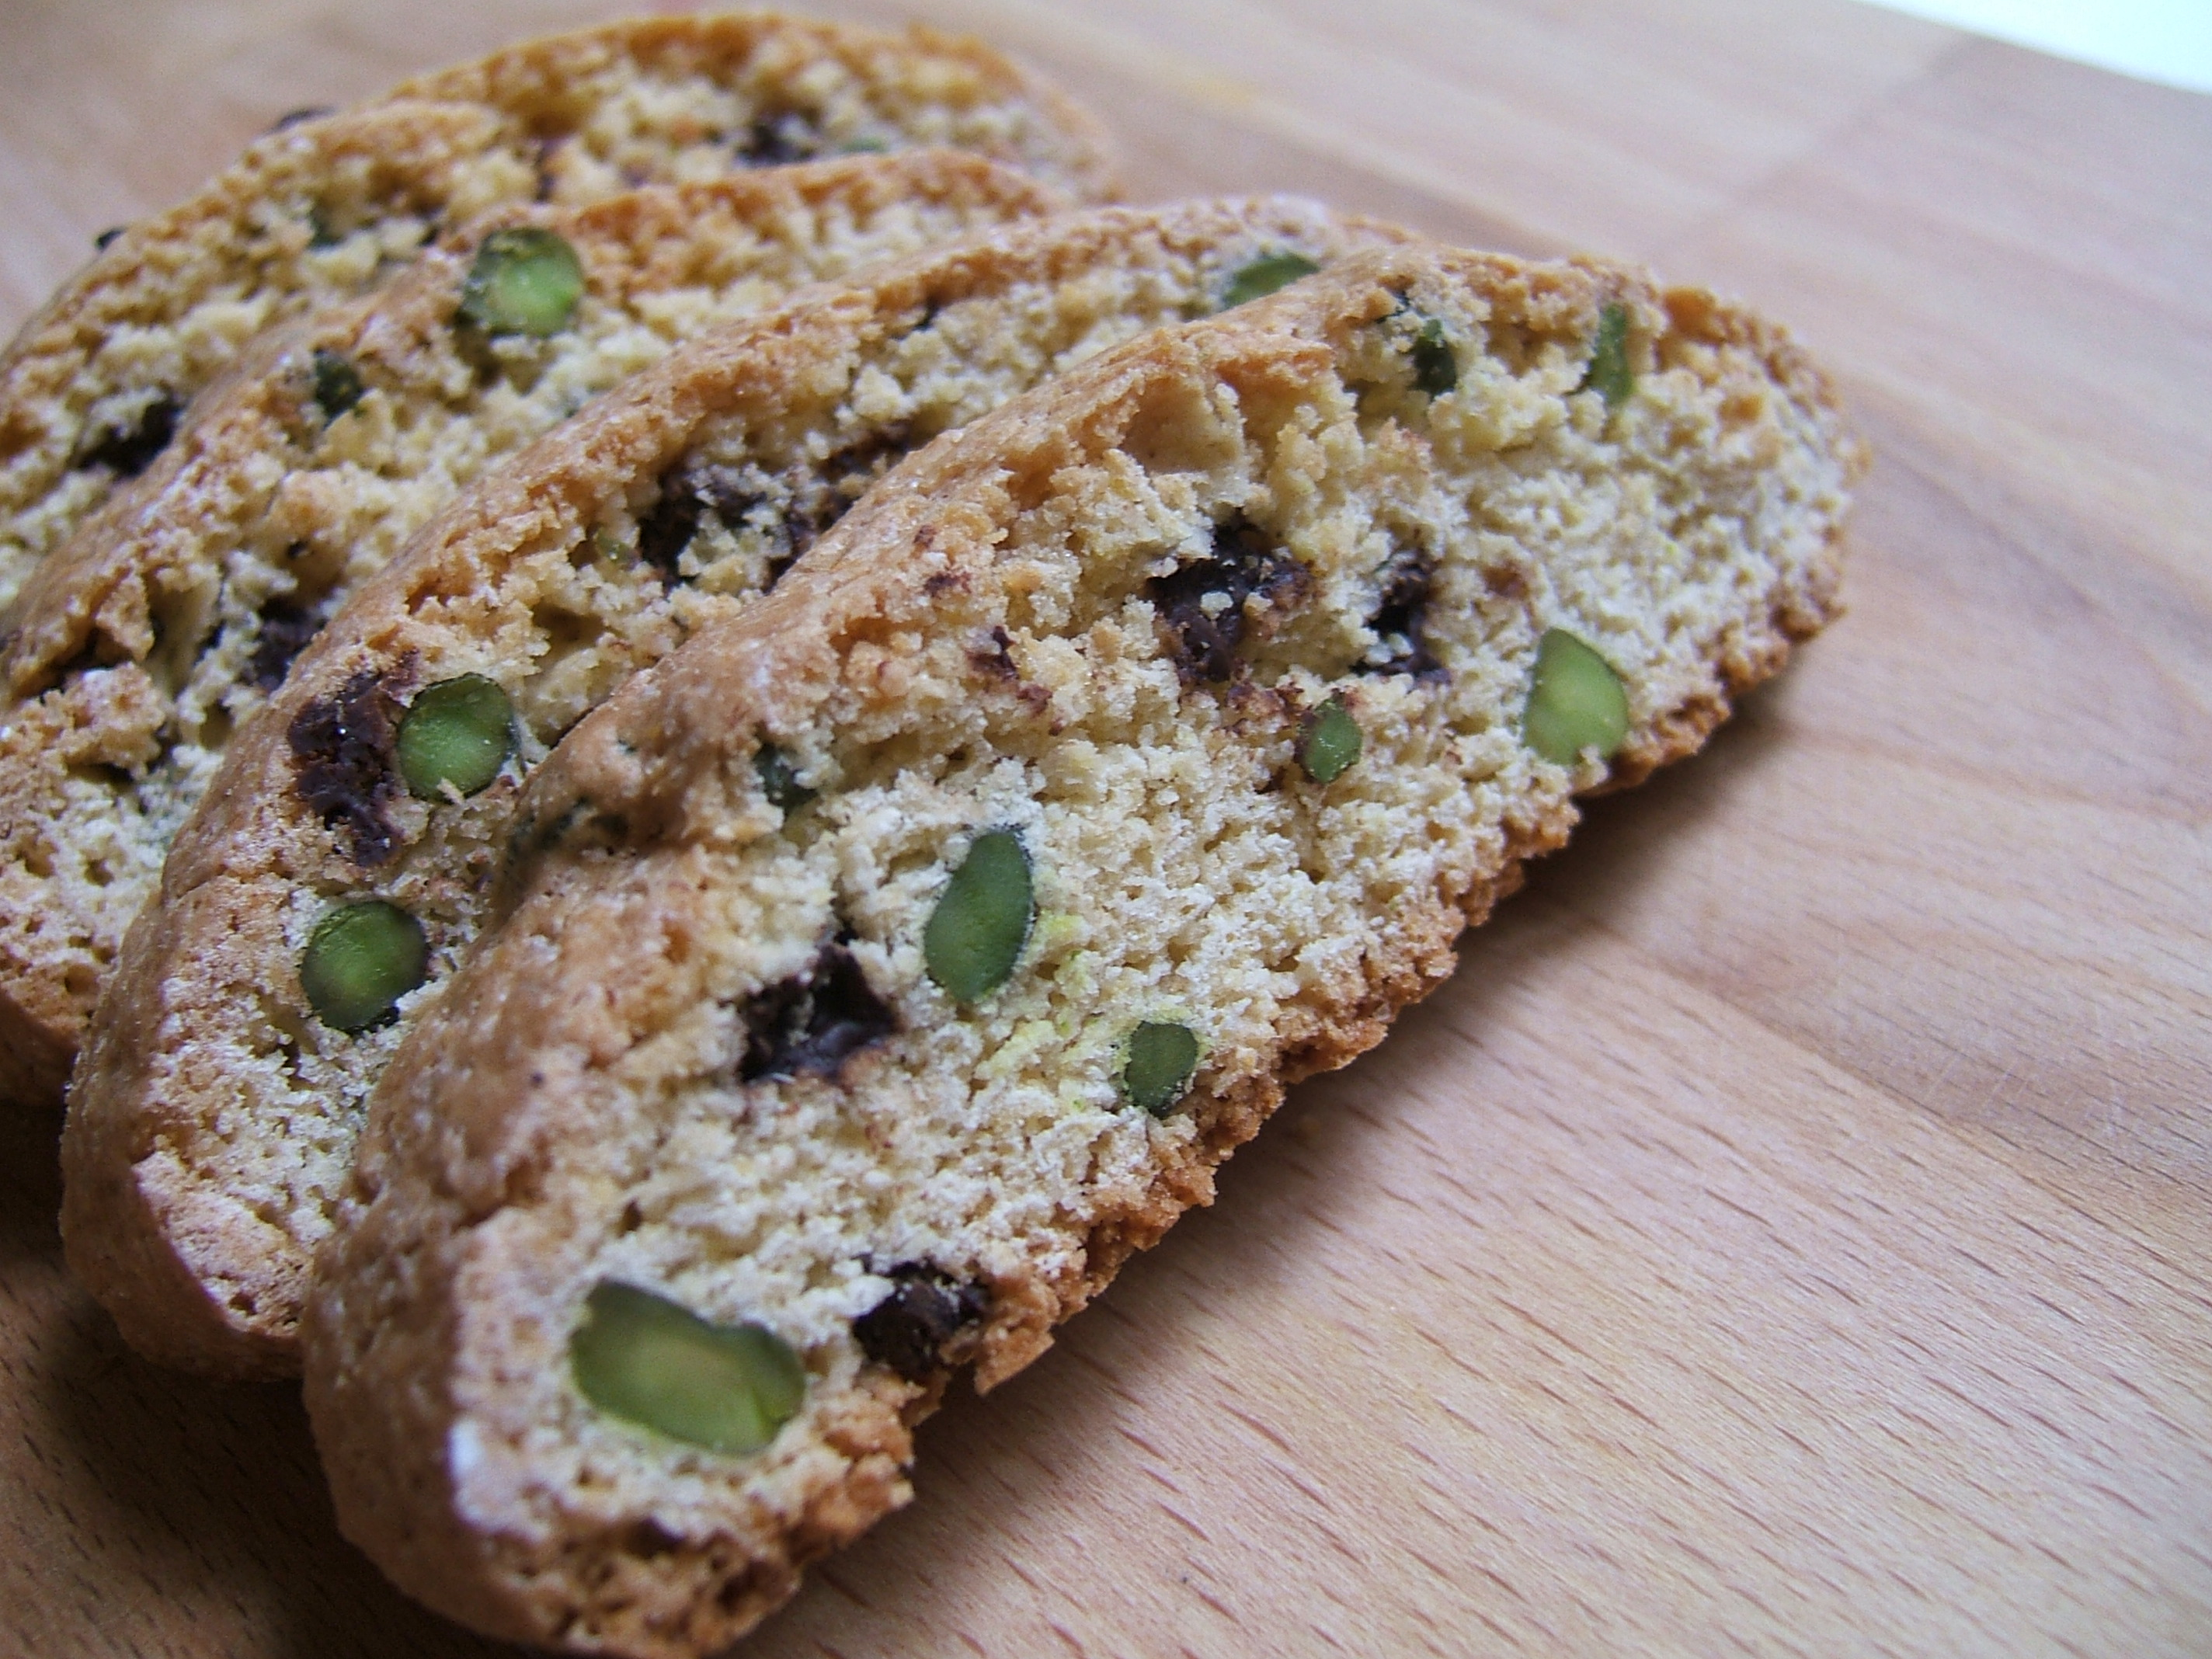 File:Chocolate & pistachio biscotti.jpg - Wikipedia, the free ...